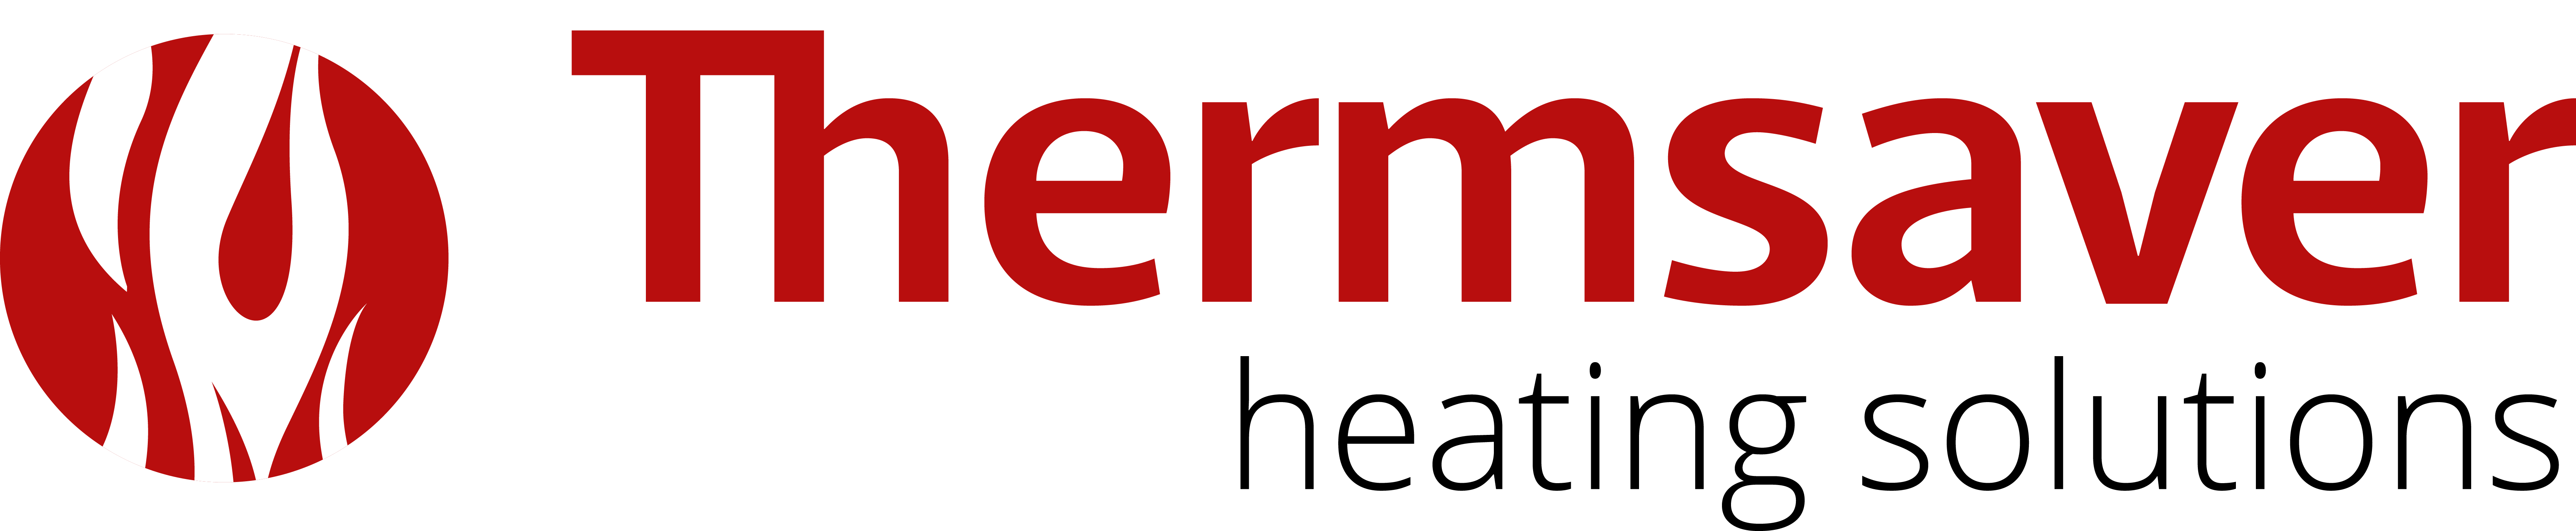 Thermsaver Heating solutions